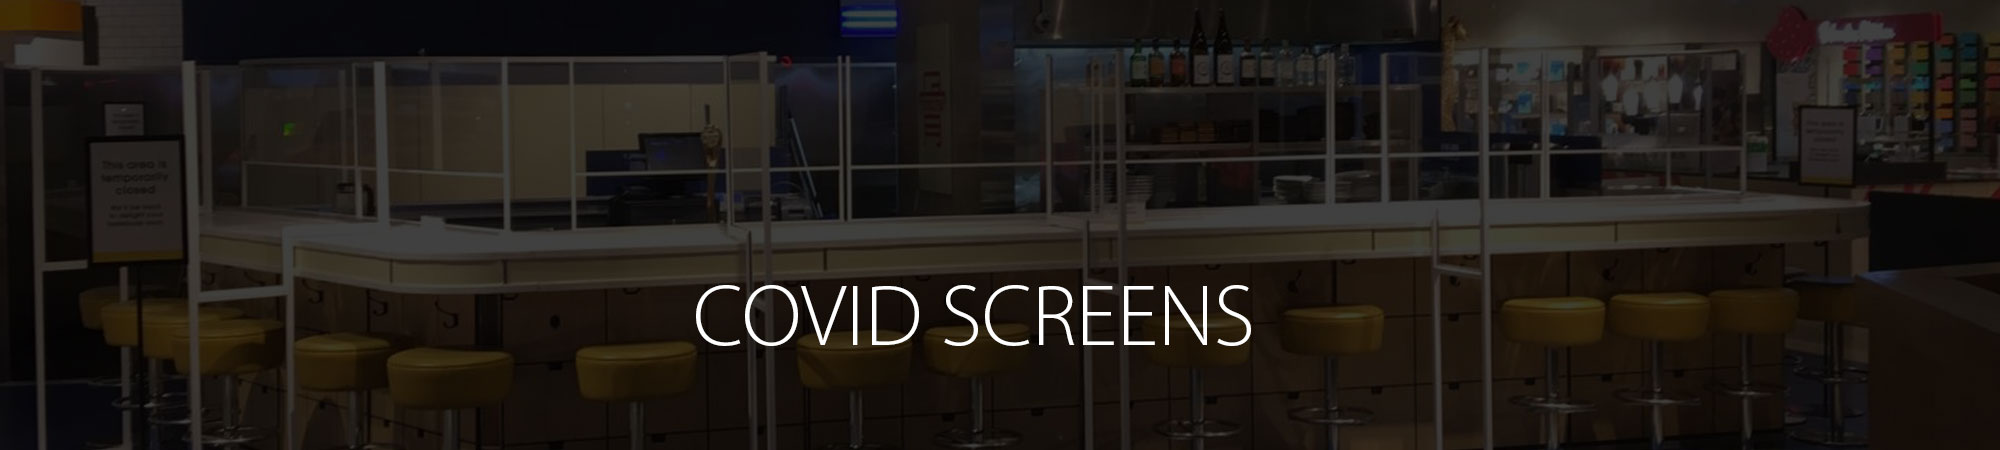 Covid Screens for Offices and Restaurants Page Header Image